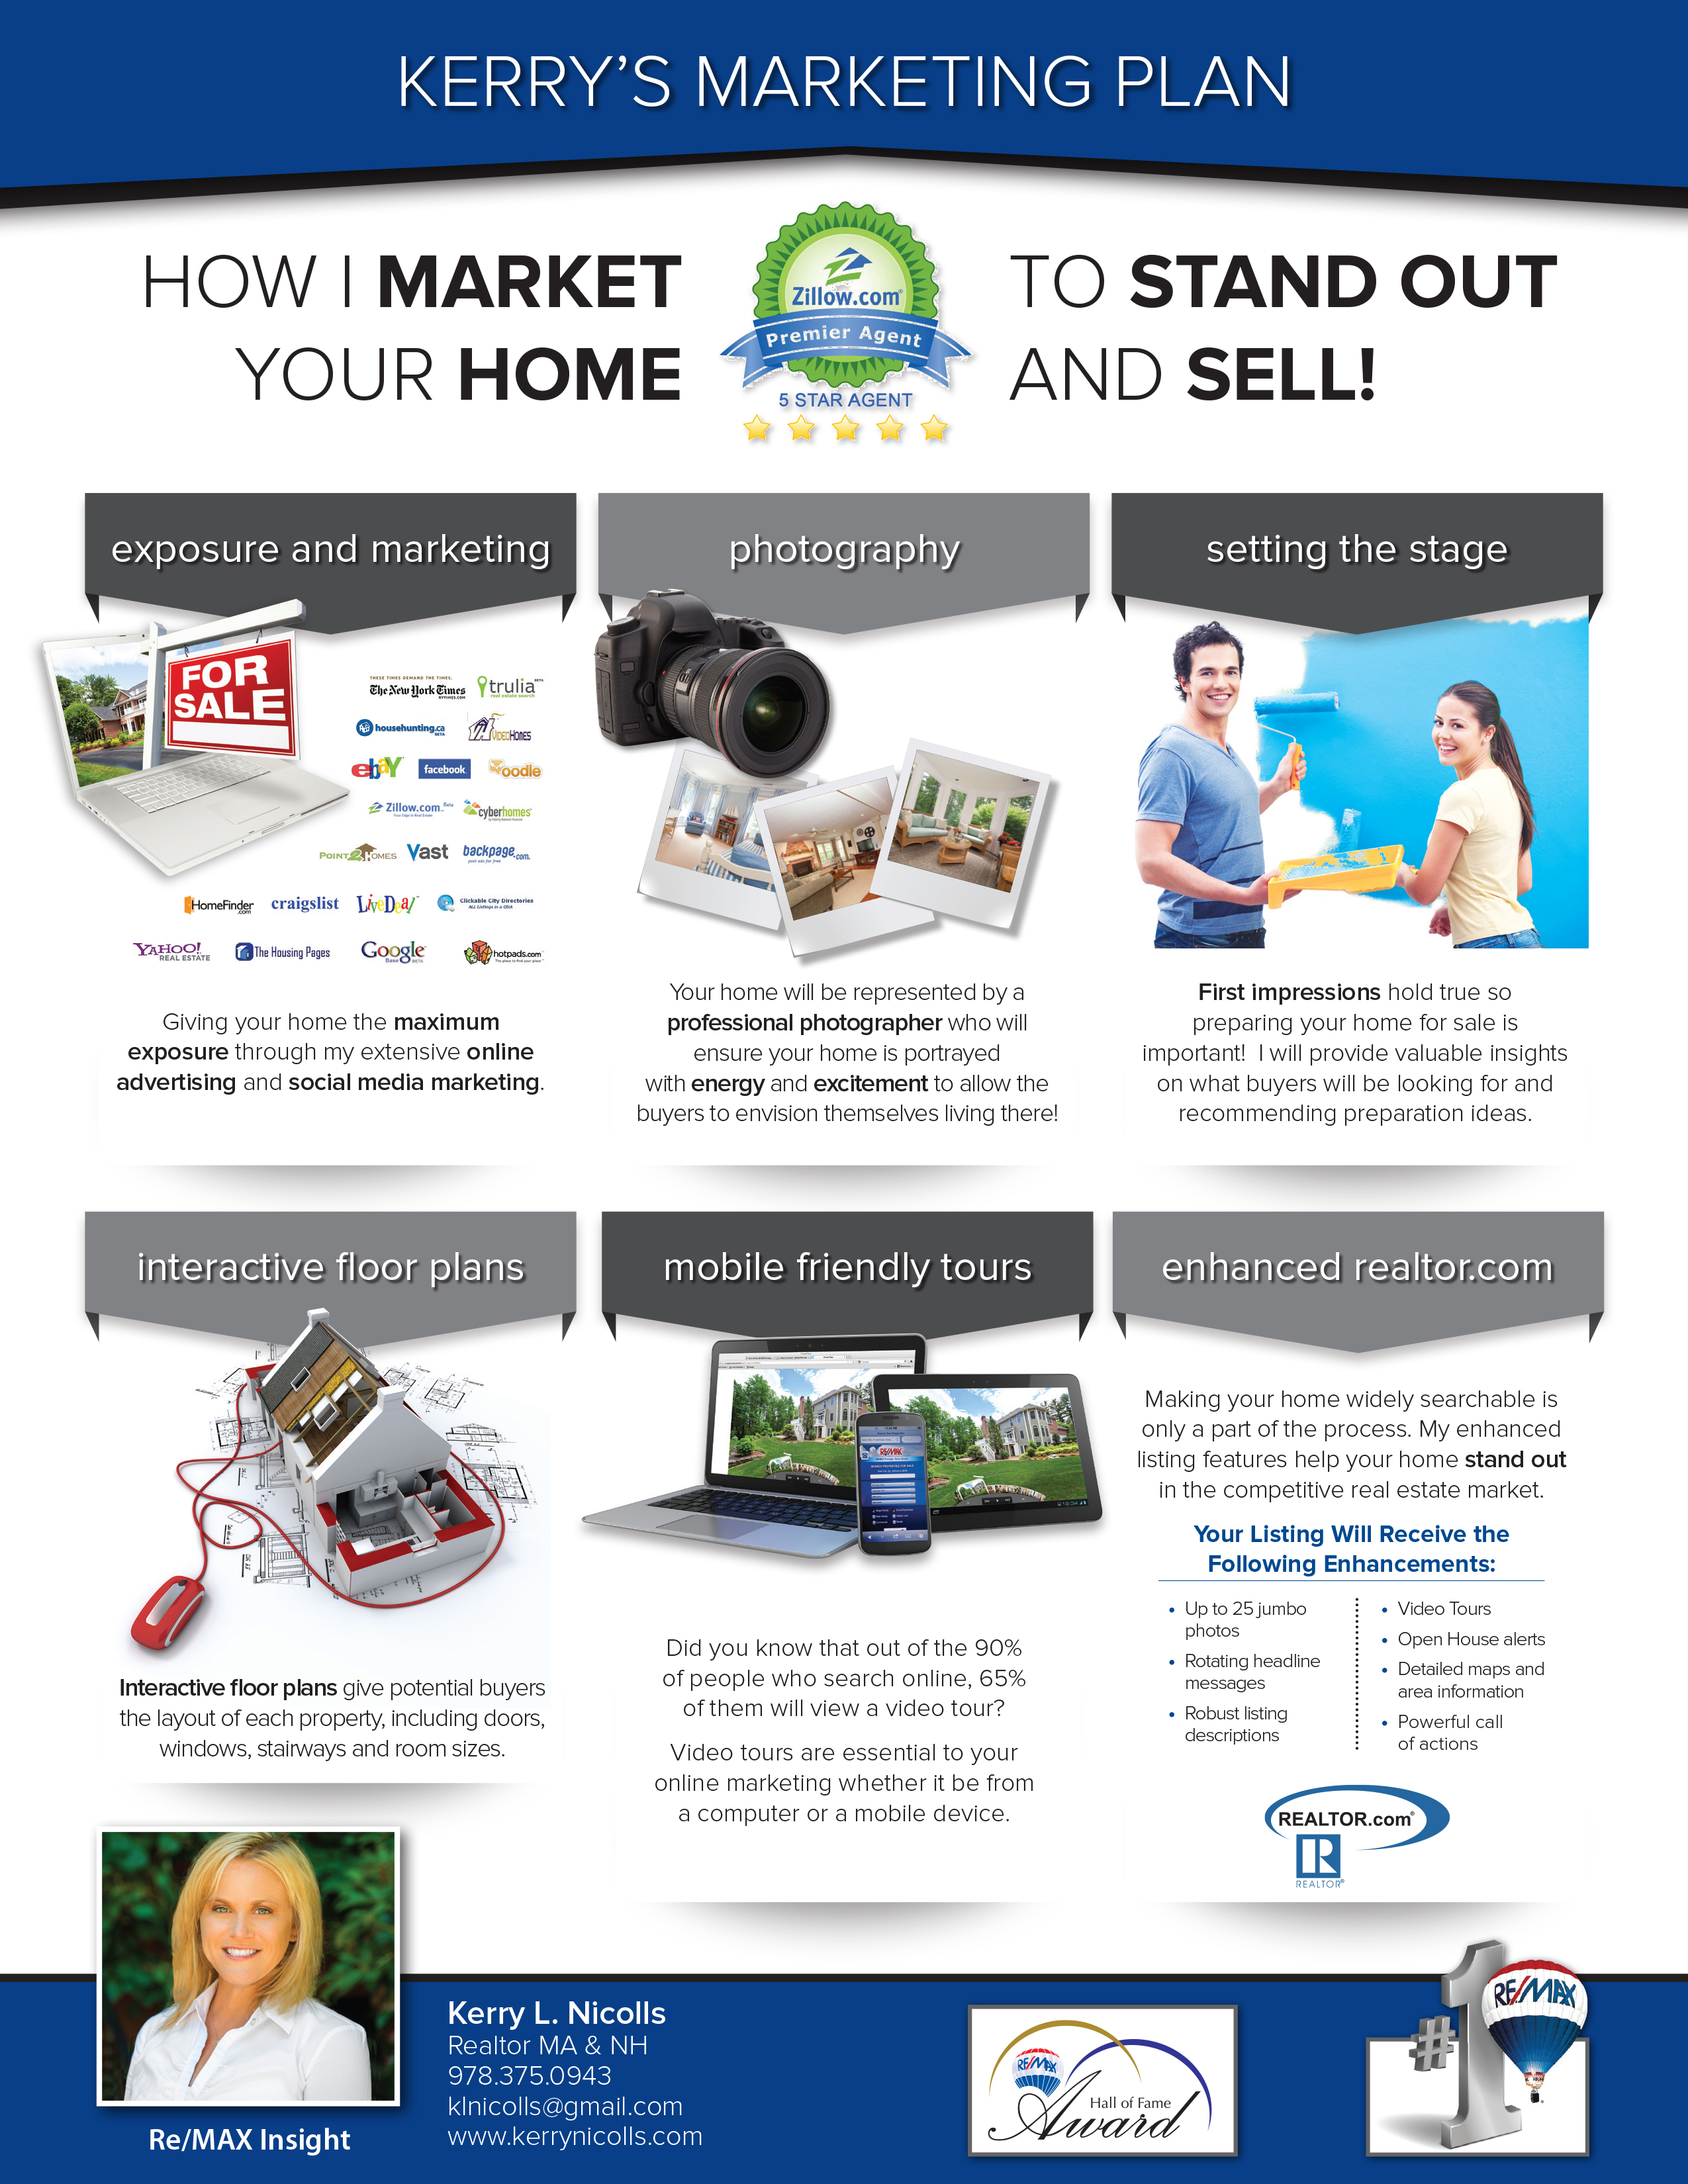 Sellers & Buyers - Kerry L. Nicolls, RE/MAX Insight